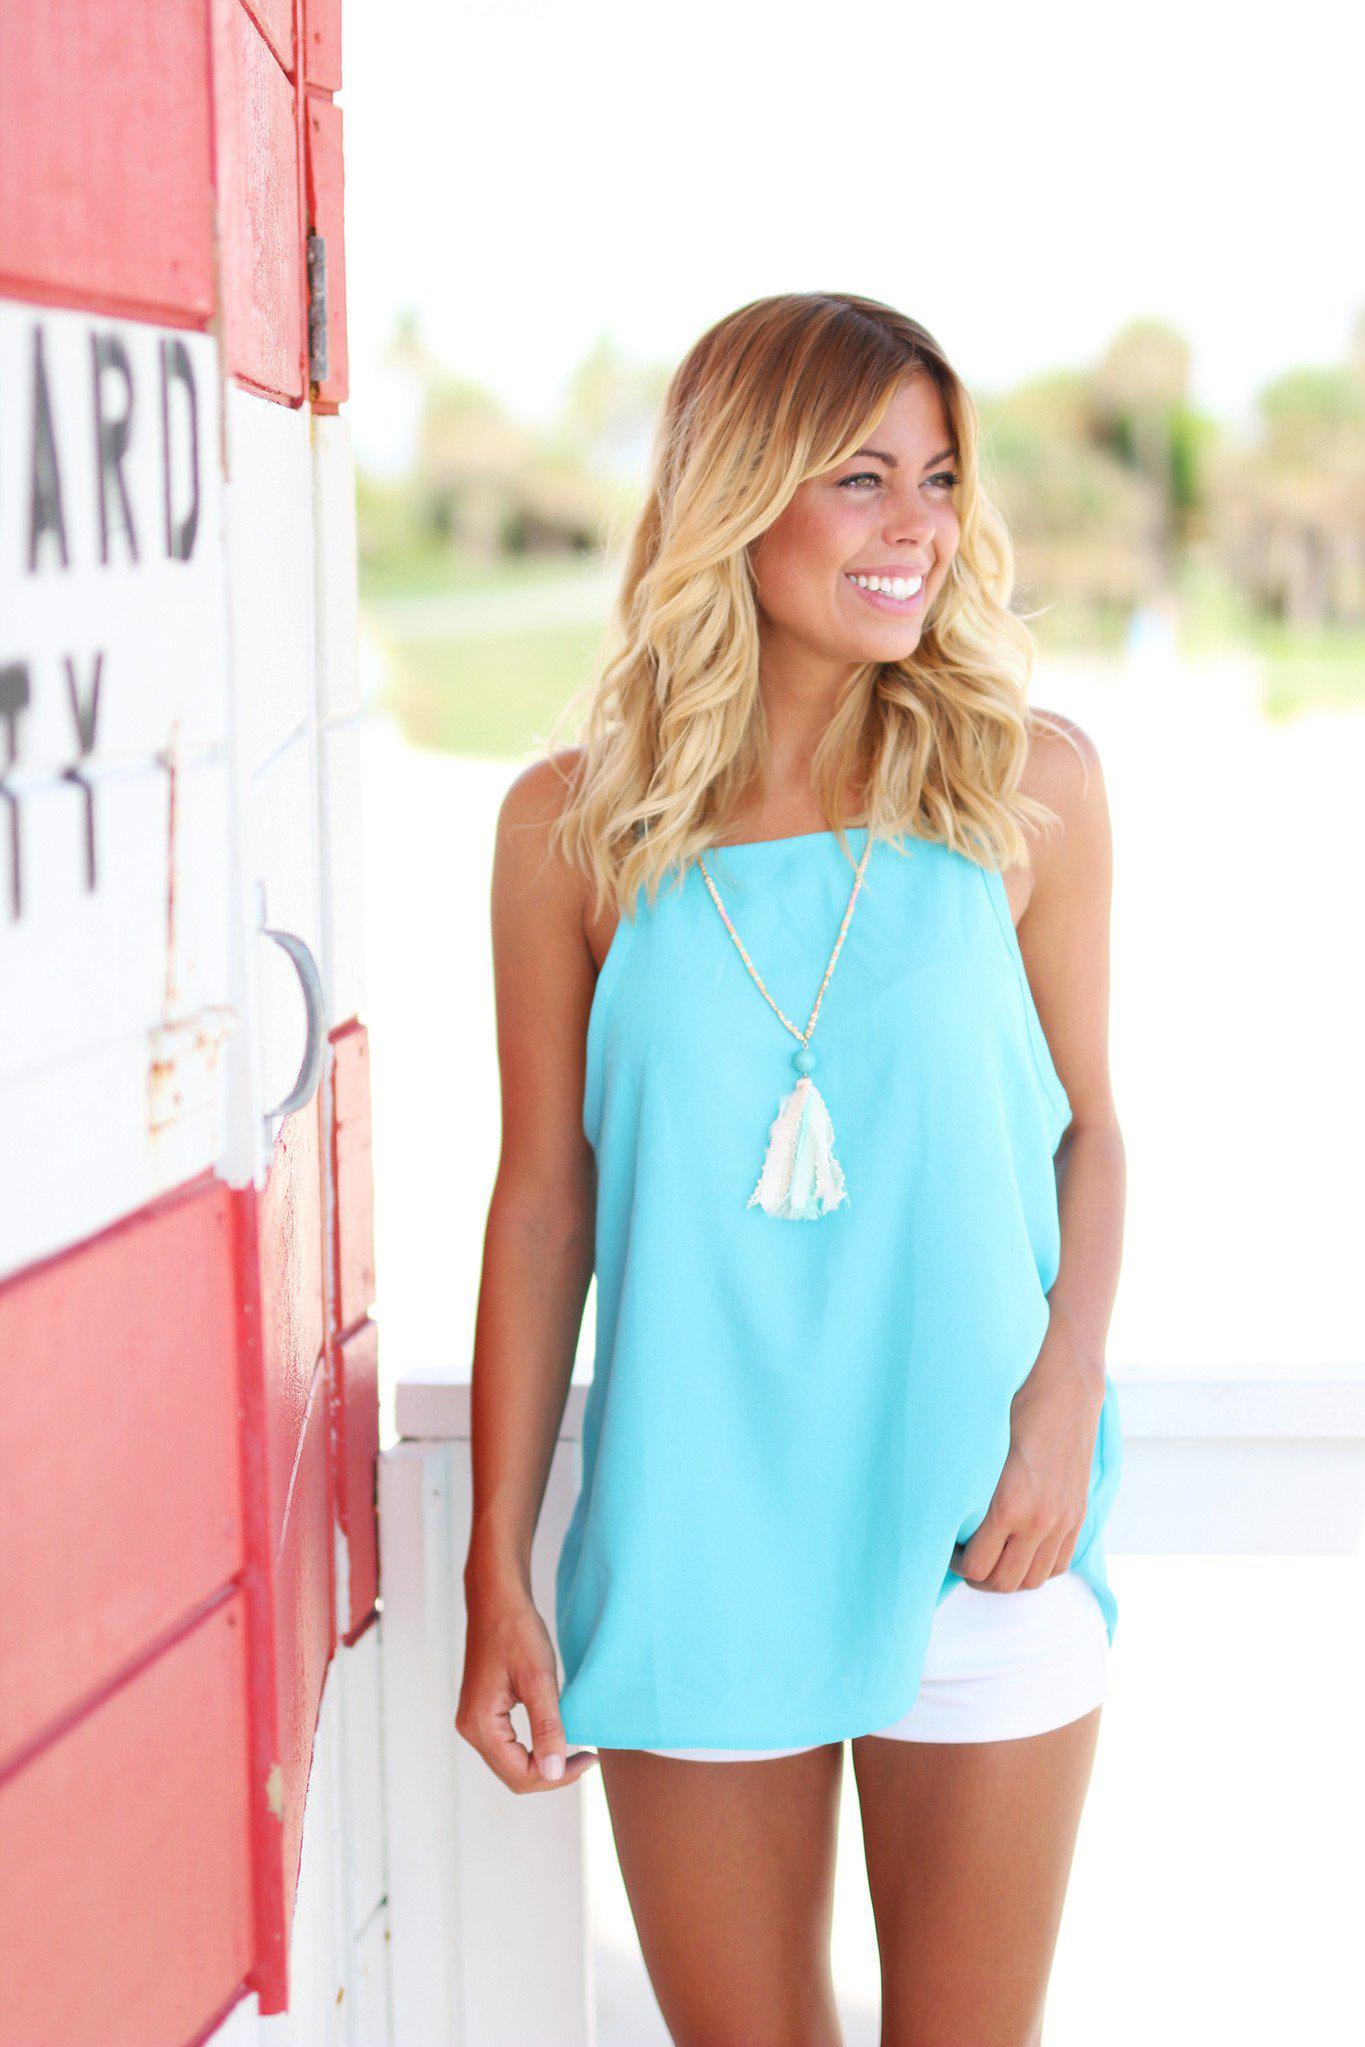 aqua fashion top